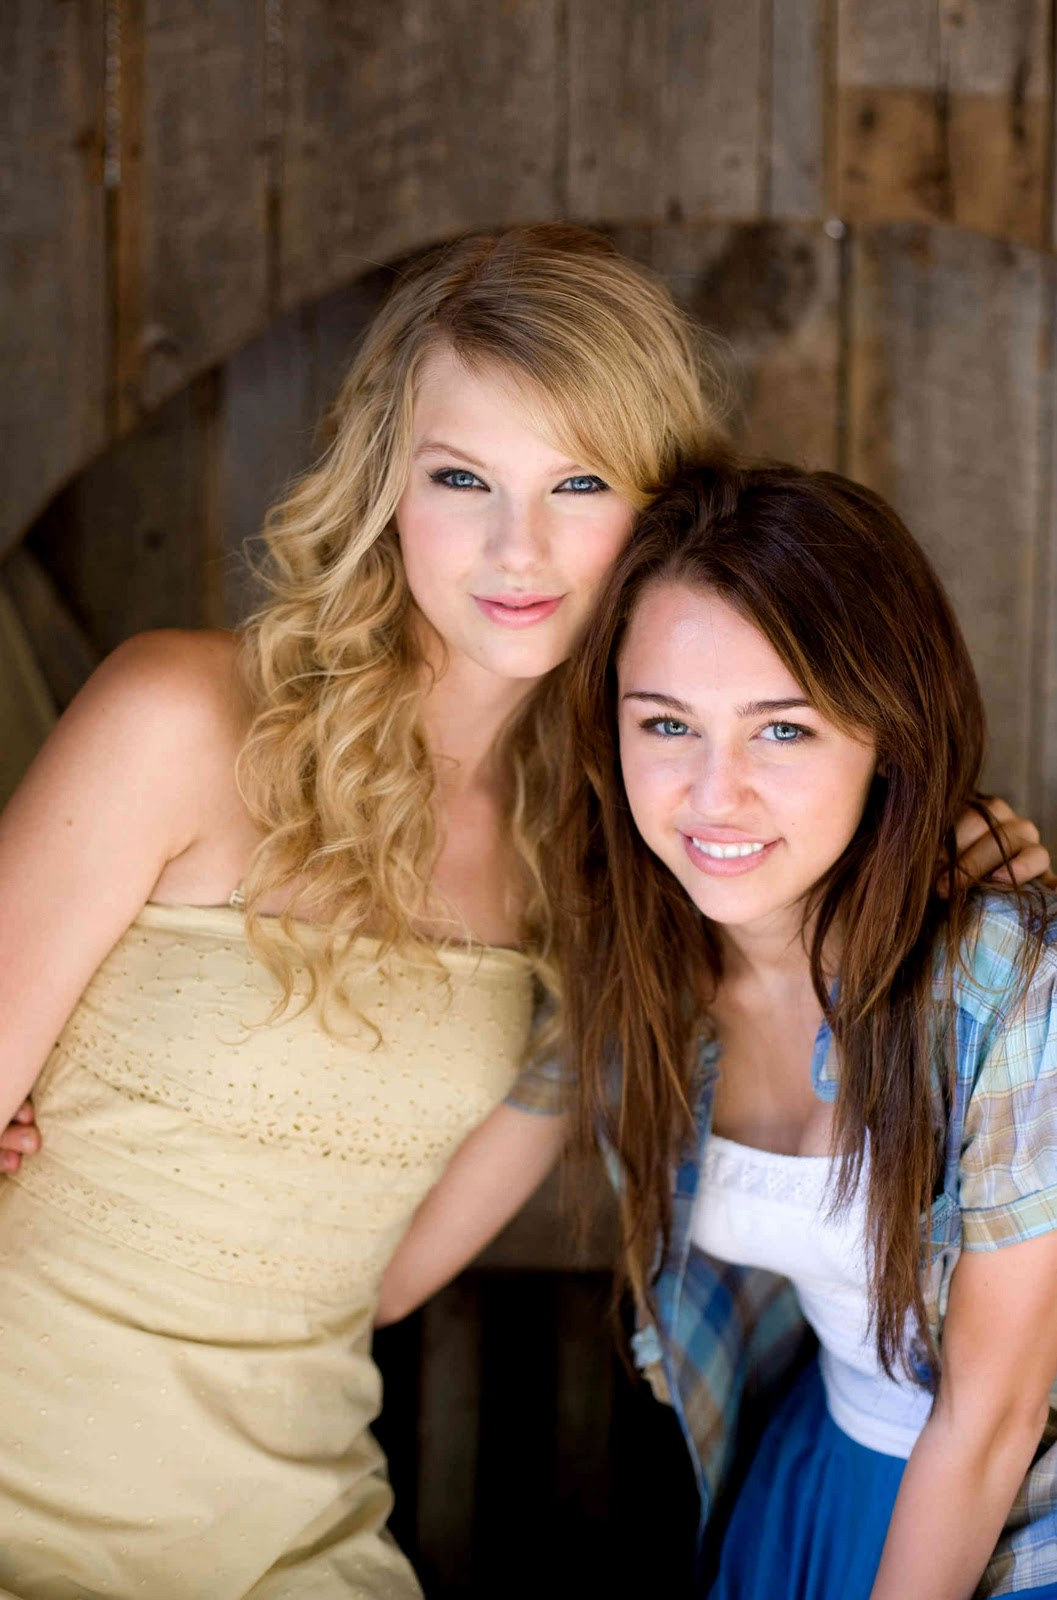 http://2.bp.blogspot.com/_ruOod5k7TGQ/TKEMJjK4I7I/AAAAAAAAAMQ/Lb9wOC9tQK4/s1600/hannah_montana_the_movie45.jpg